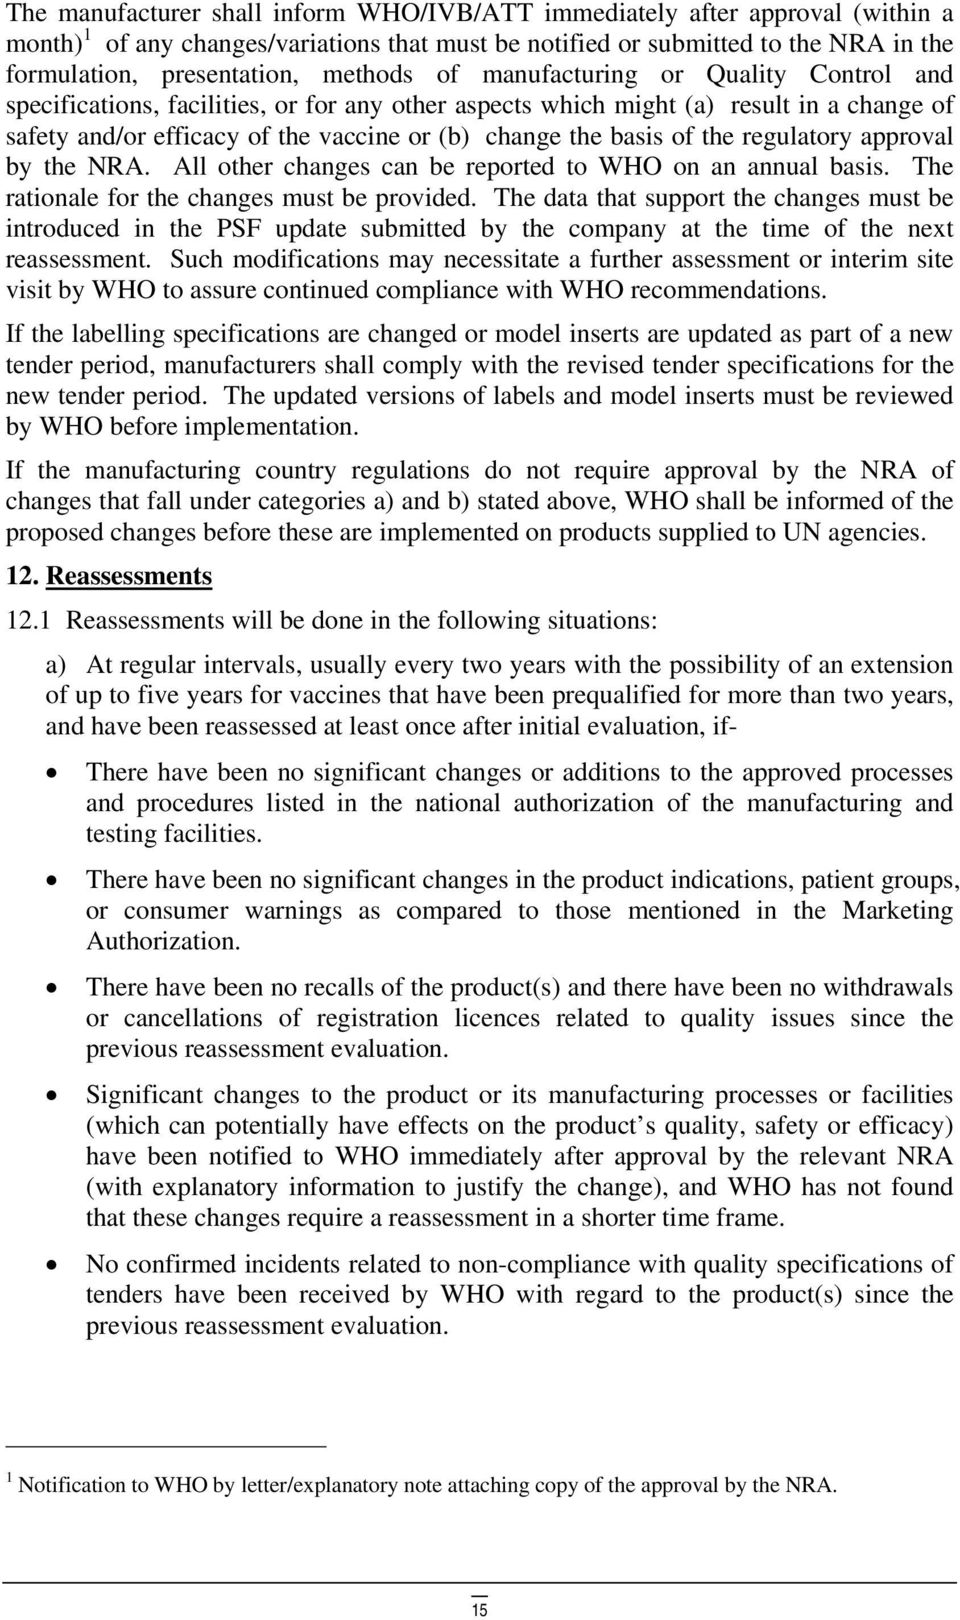 basis of the regulatory approval by the NRA. All other changes can be reported to WHO on an annual basis. The rationale for the changes must be provided.